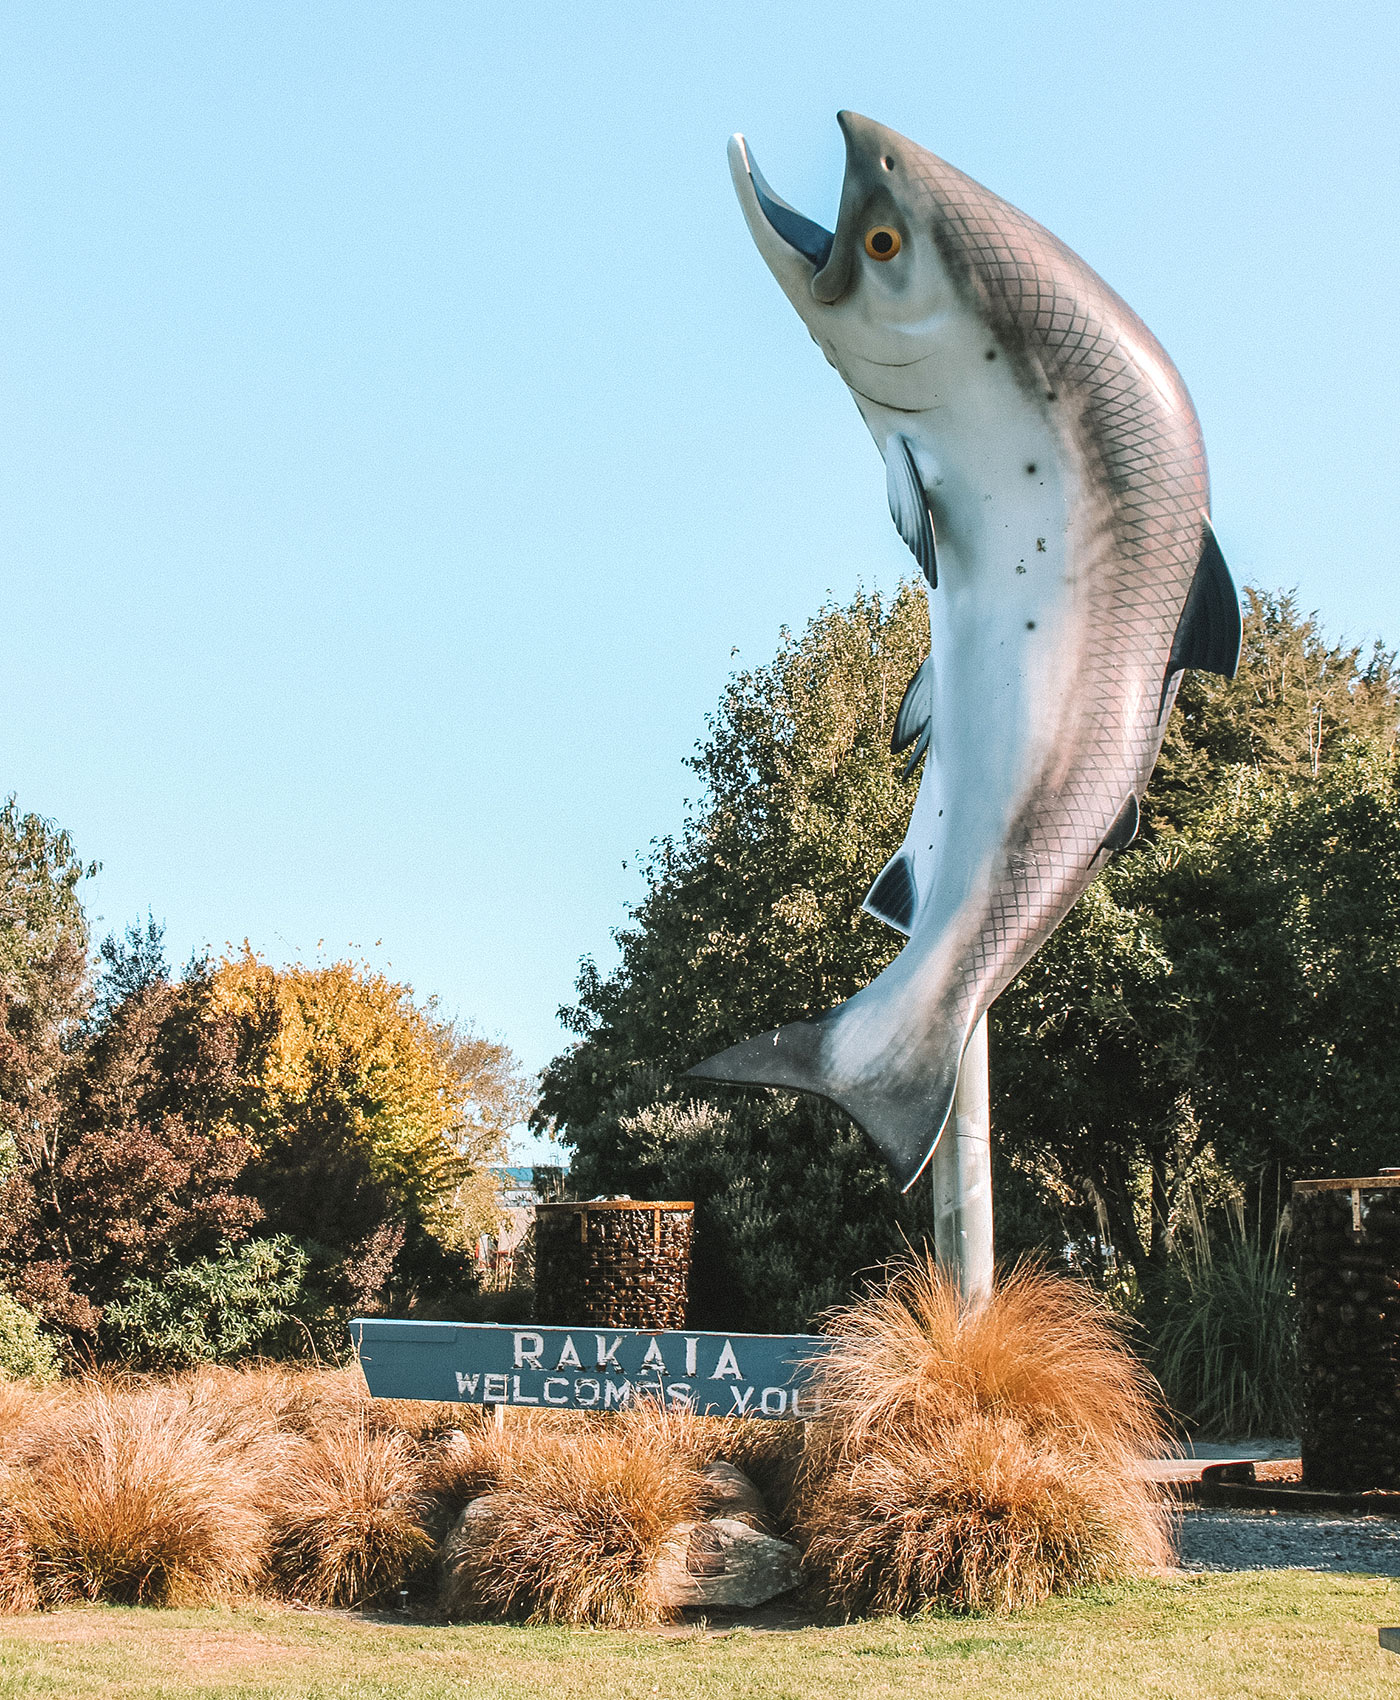 'Big Things' in New Zealand - the weird and wonderful statues